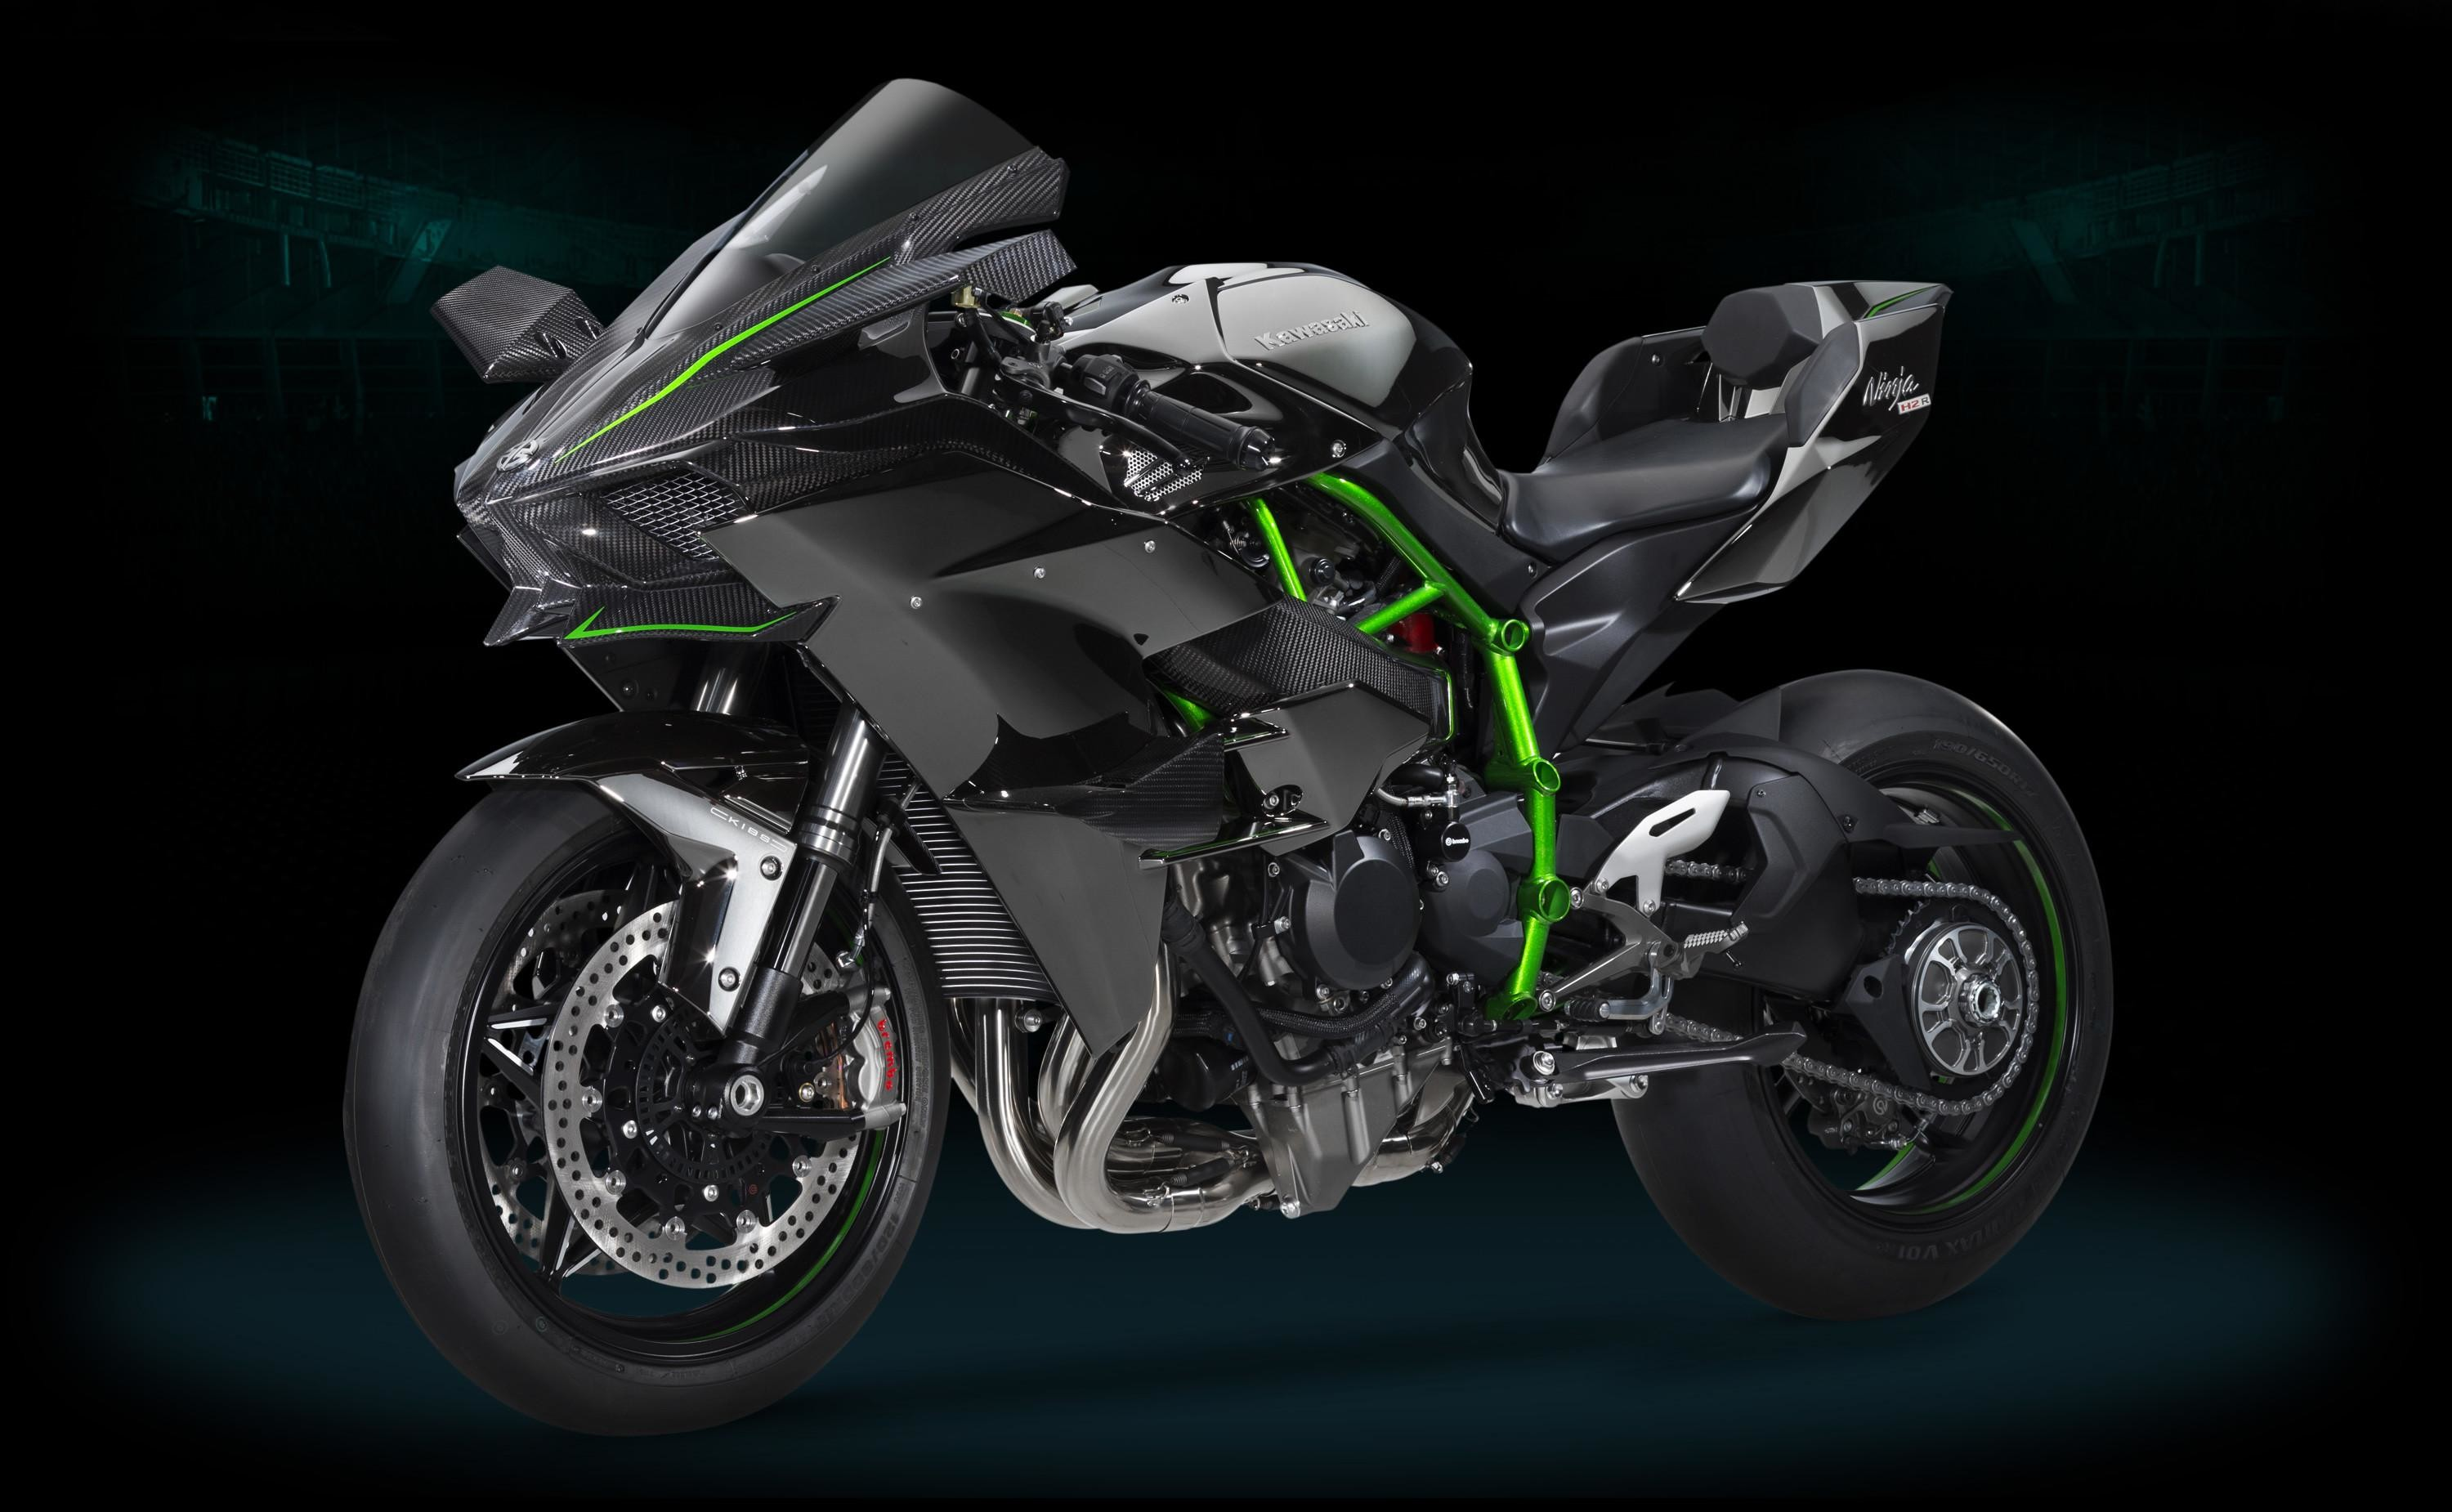 15 Must-Know Facts About the Kawasaki Ninja H2R